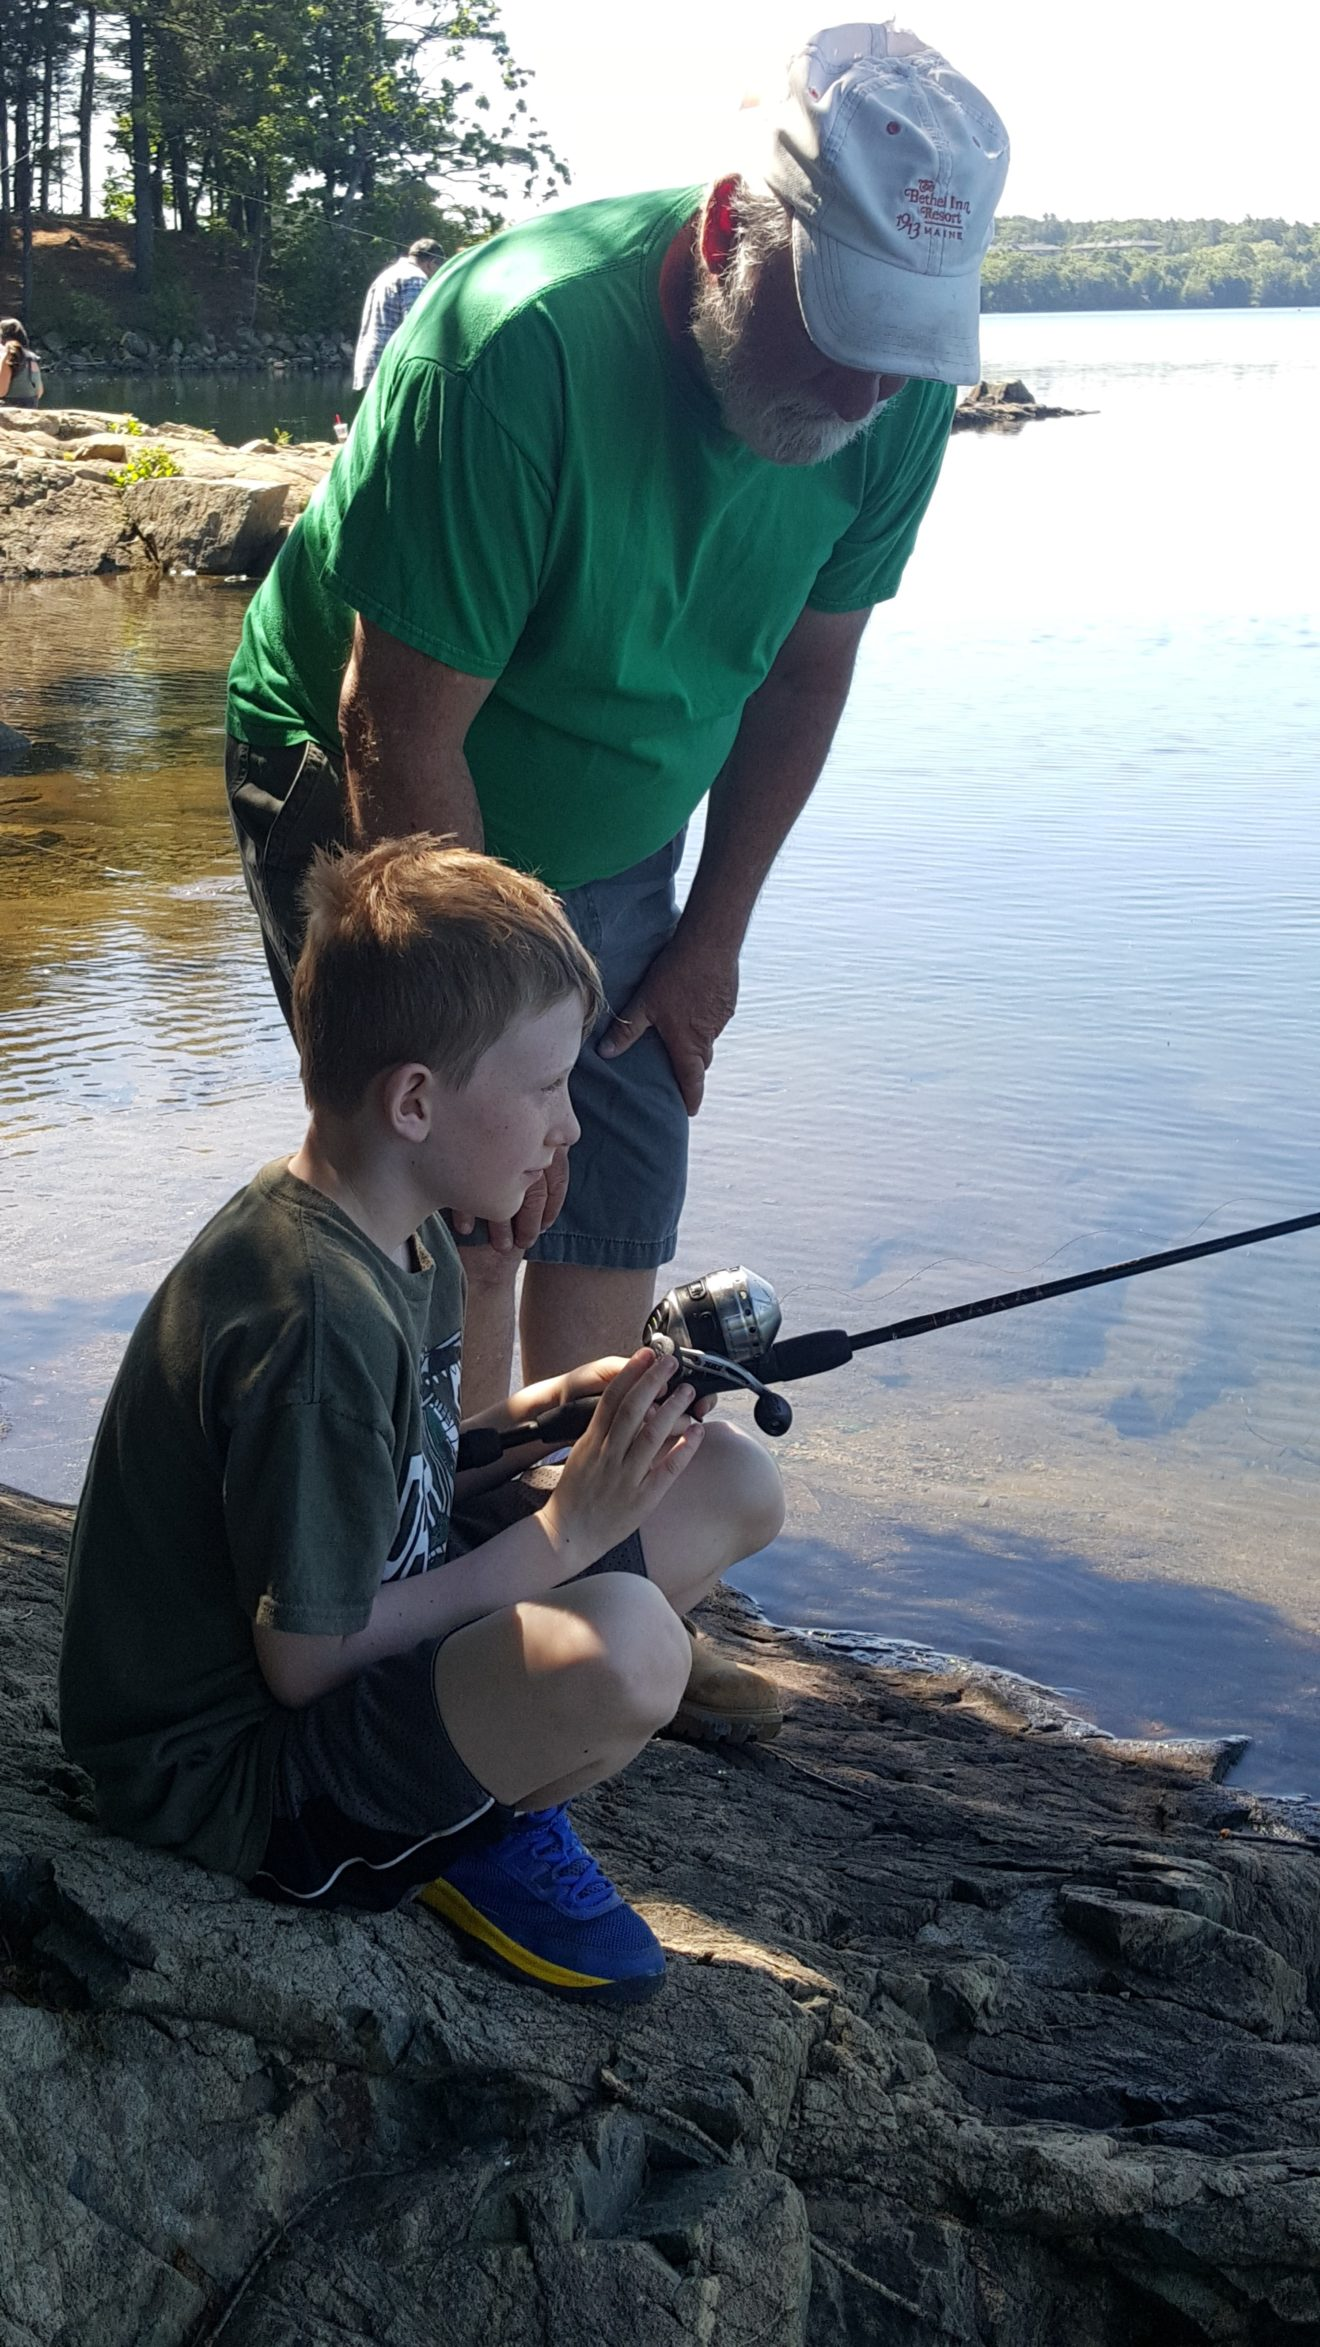 Kevin-Sweeney-age-7-getting-fishing-lesson-from-his-grandfather-1320x2347